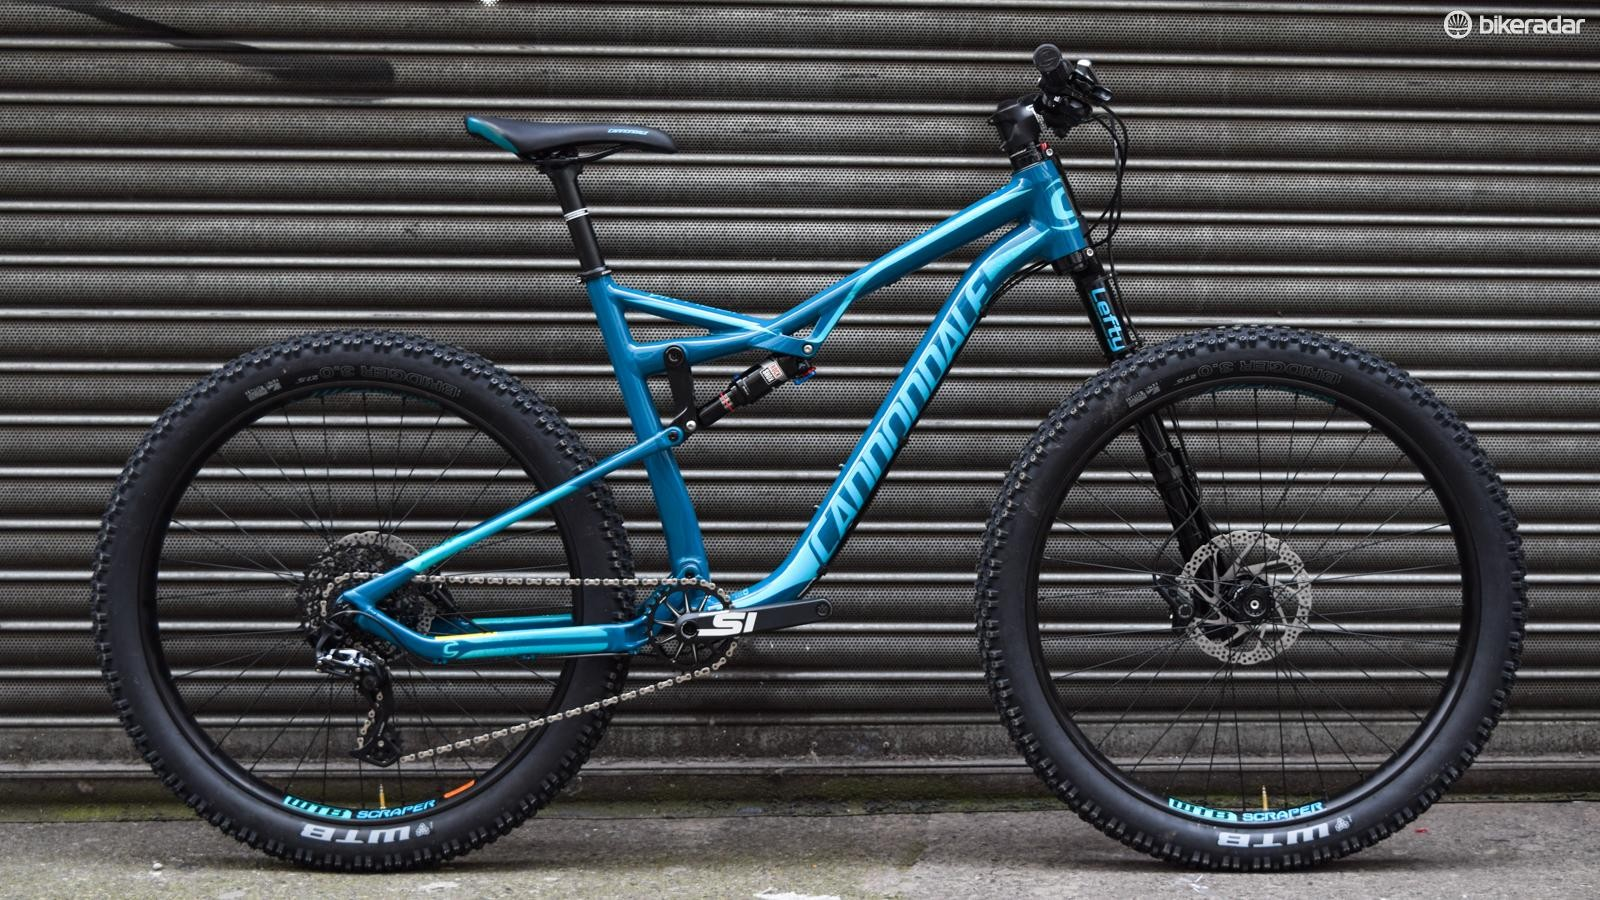 """The Cannondale Bad Habit 1 accepts 27.5"""" tyres up to three inches wide"""